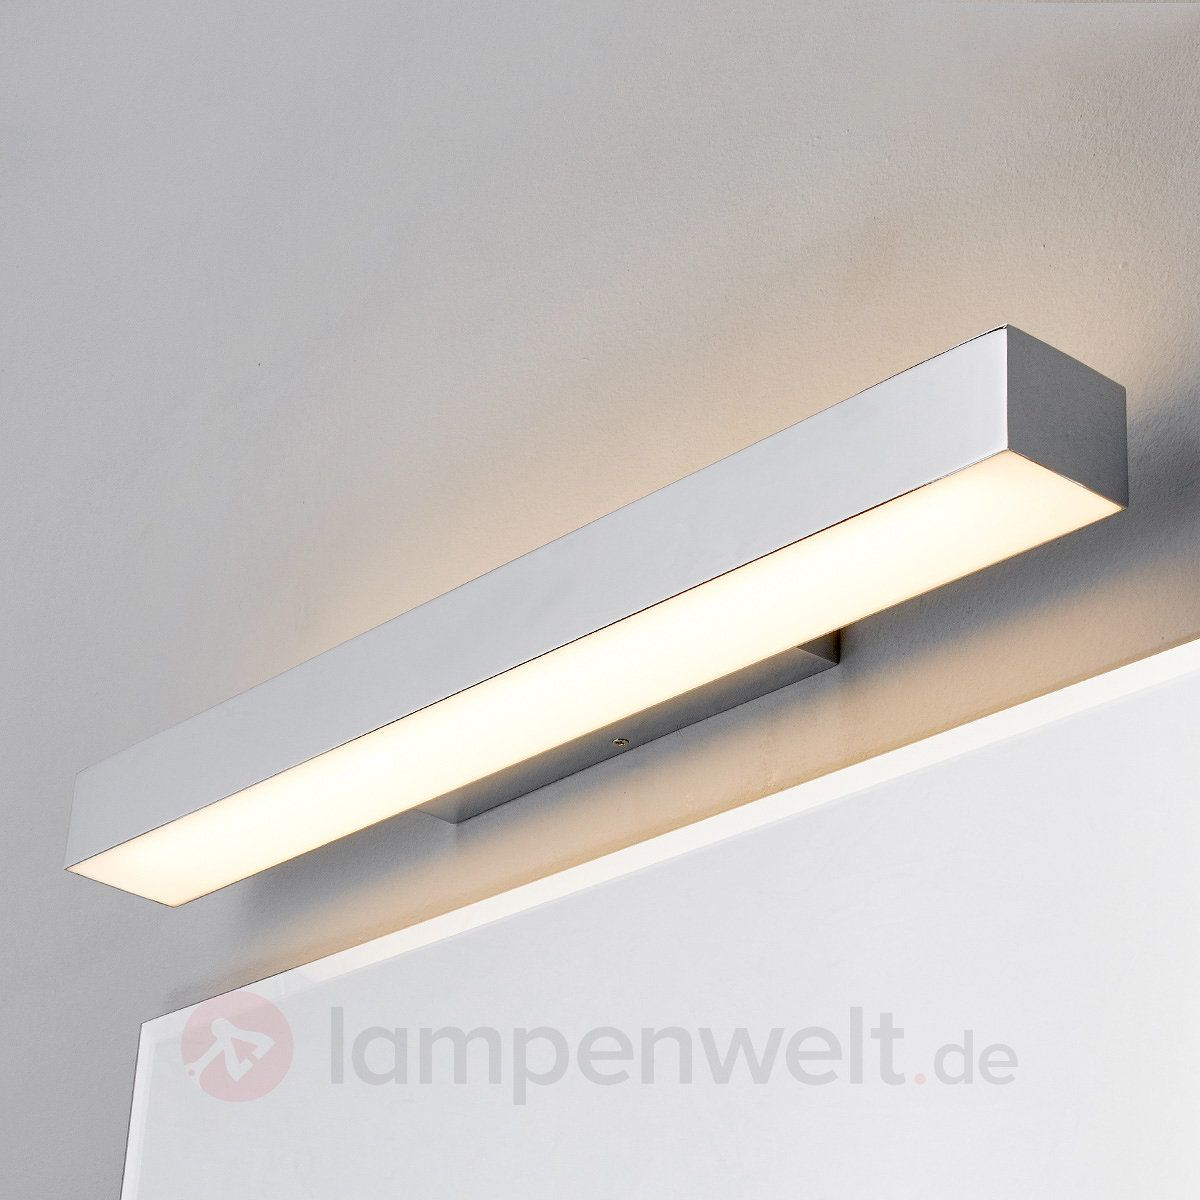 Badezimmer Wandleuchten Kiana Bad Wandleuchte Mit Led In Chrom Let There Be Light